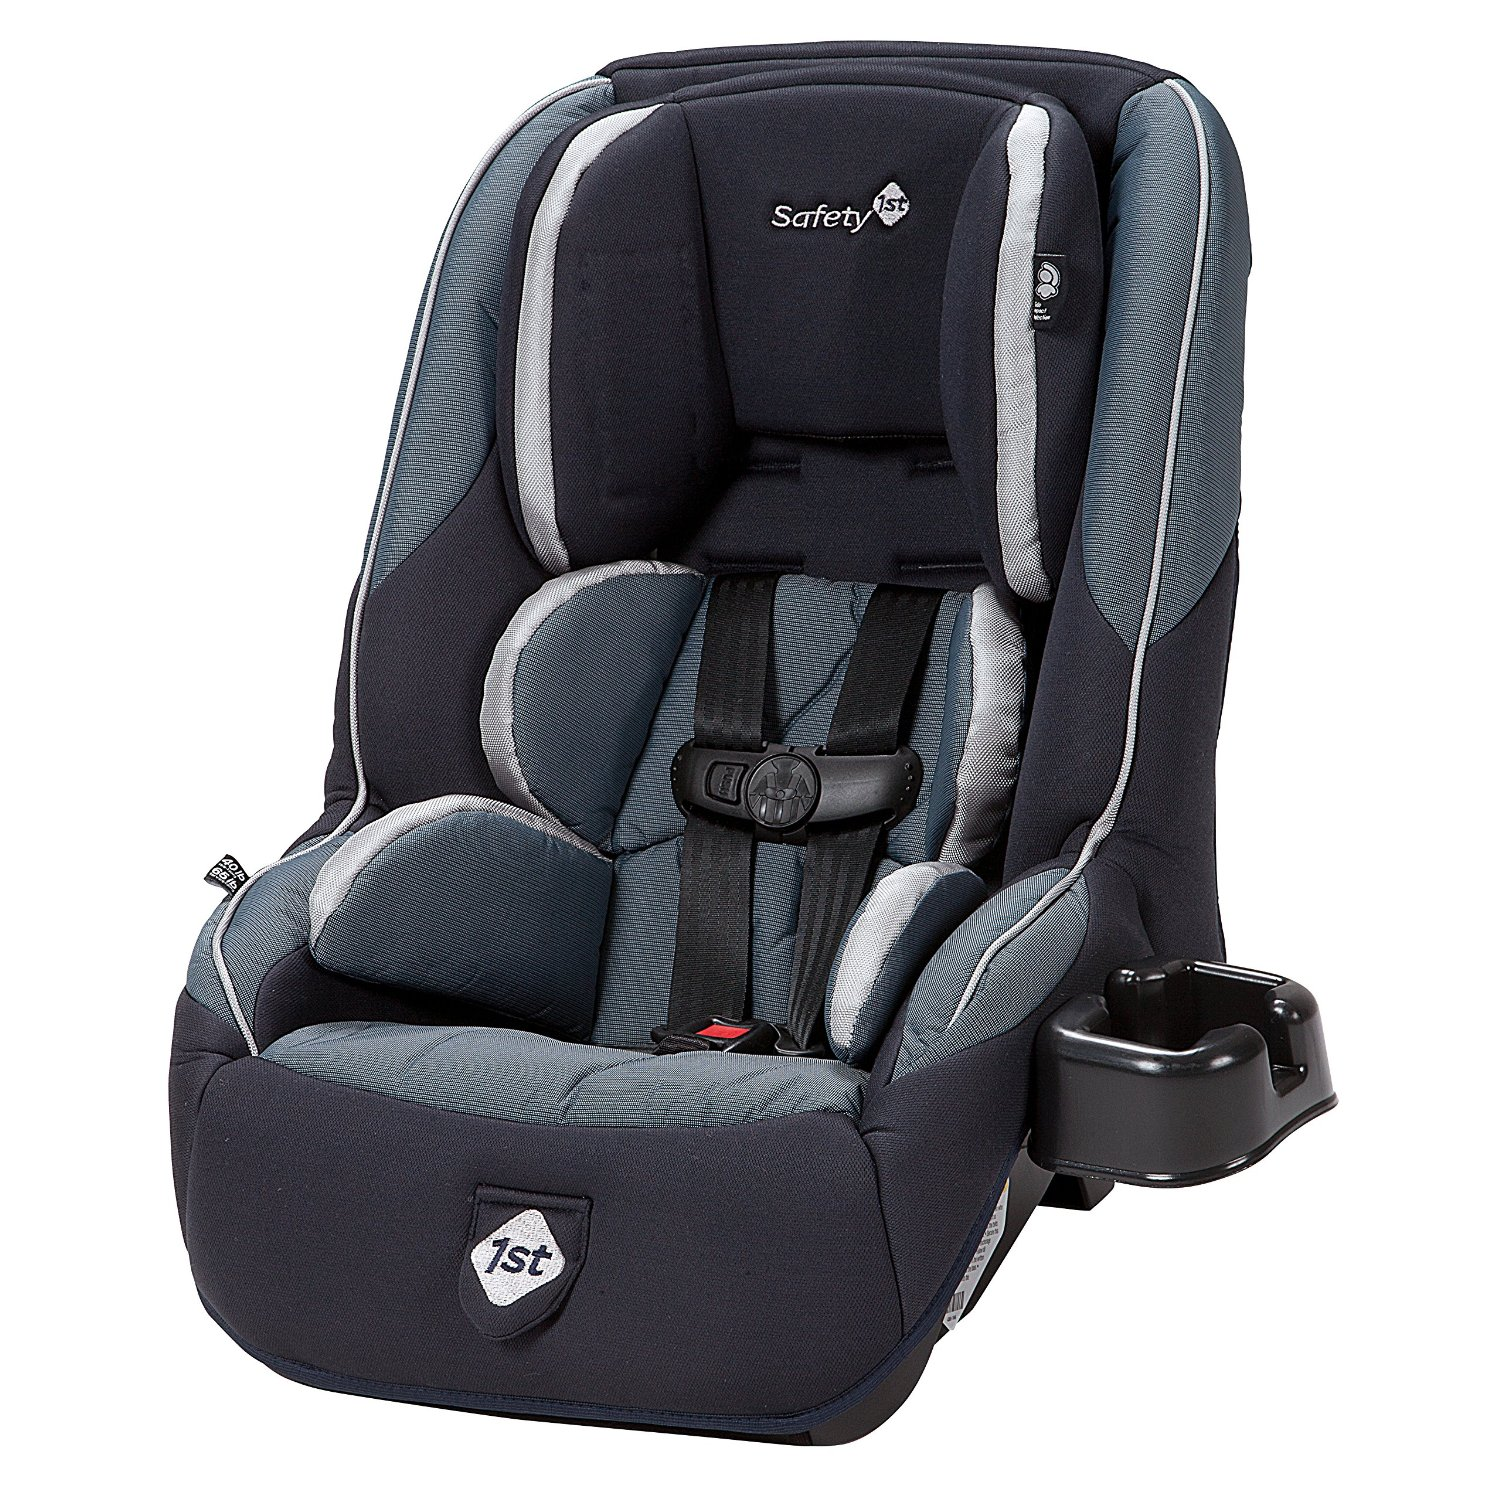 Flagrant Safety Guide Safety Guide Vs Graco My Ride Graco My Ride 65 Lx Review Graco My Ride 65 Lx baby Graco My Ride 65